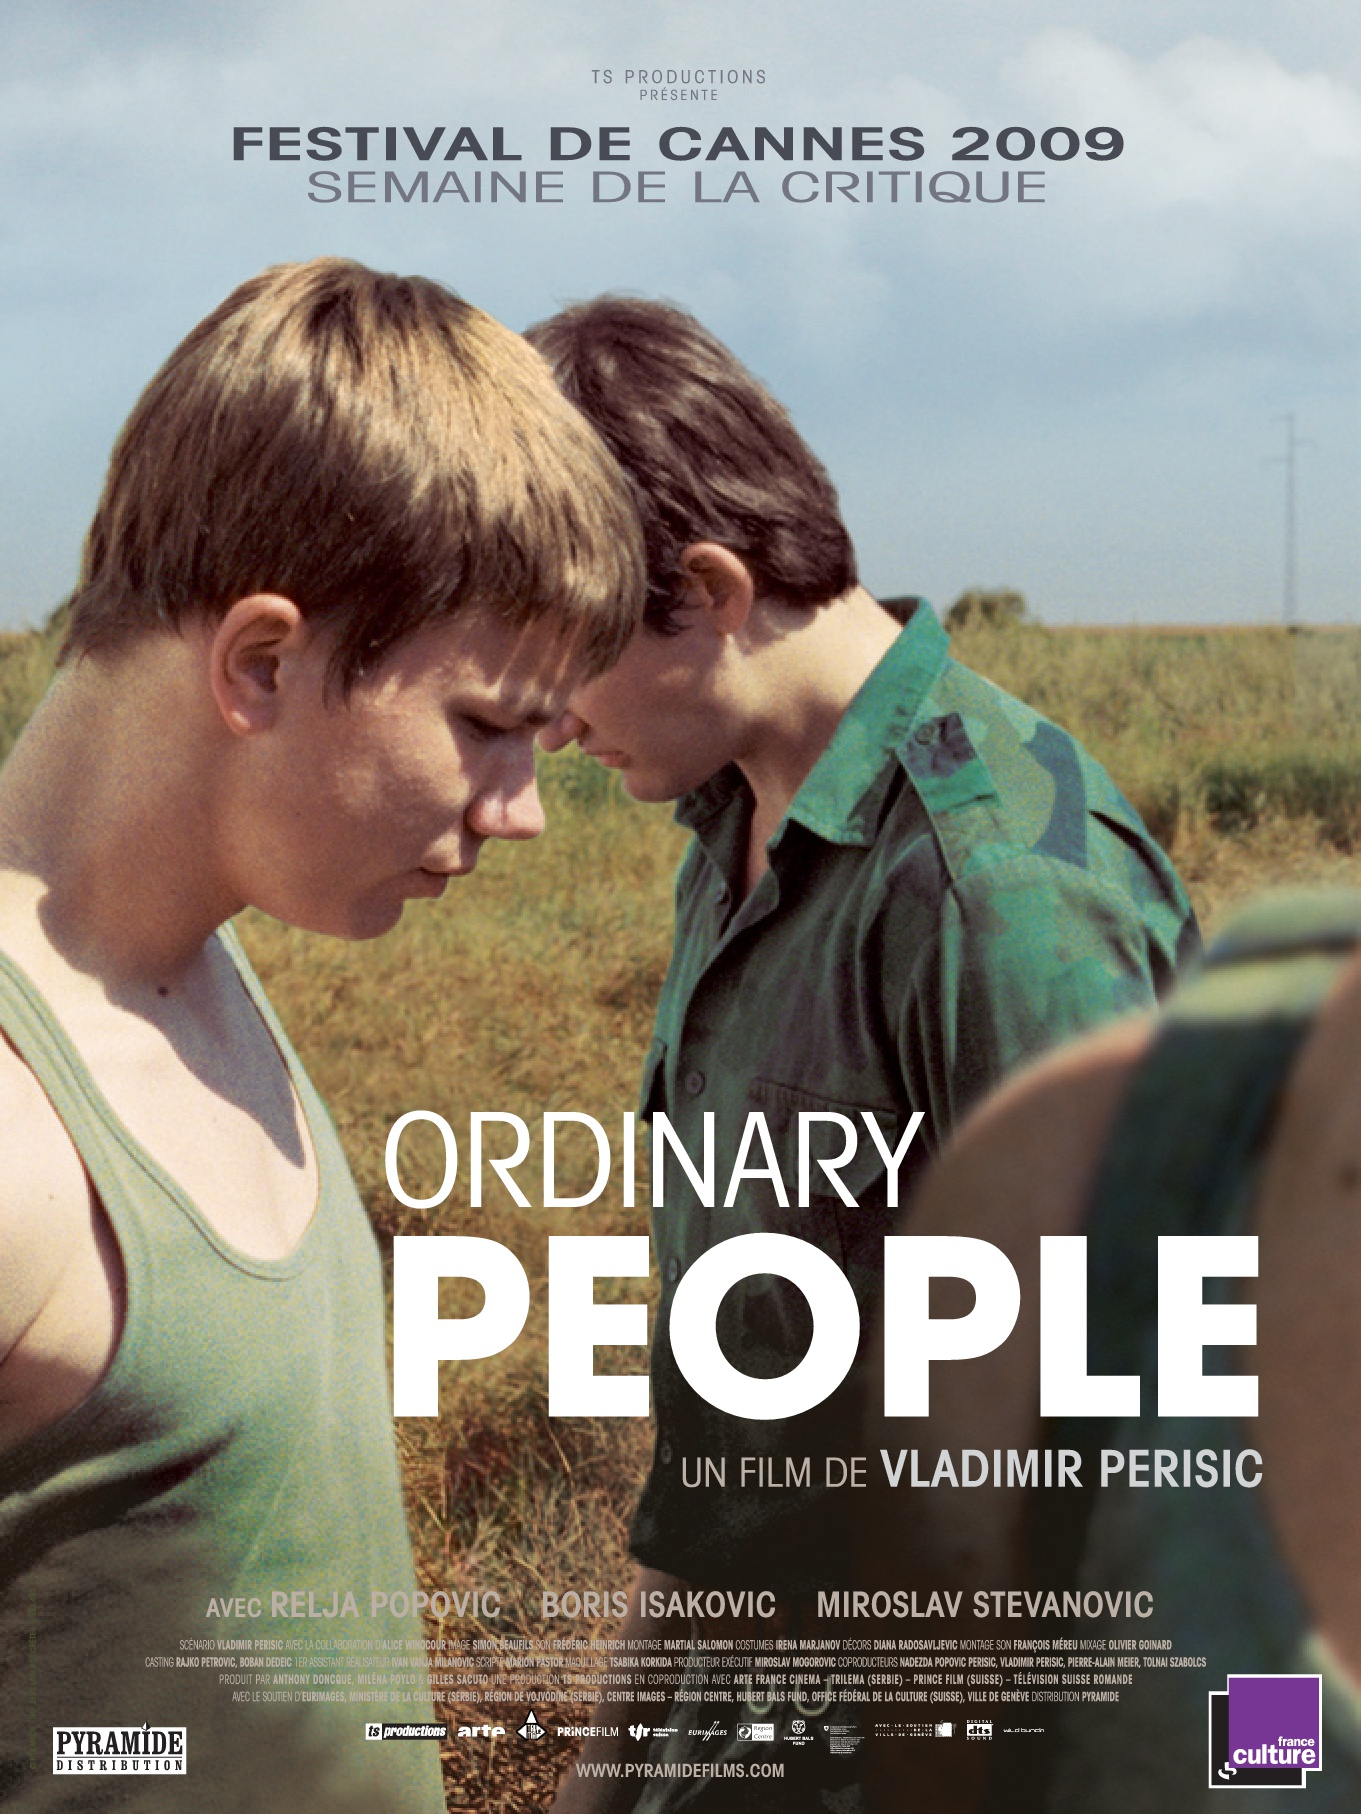 ORDINARY PEOPLE - Vladimir Perisic